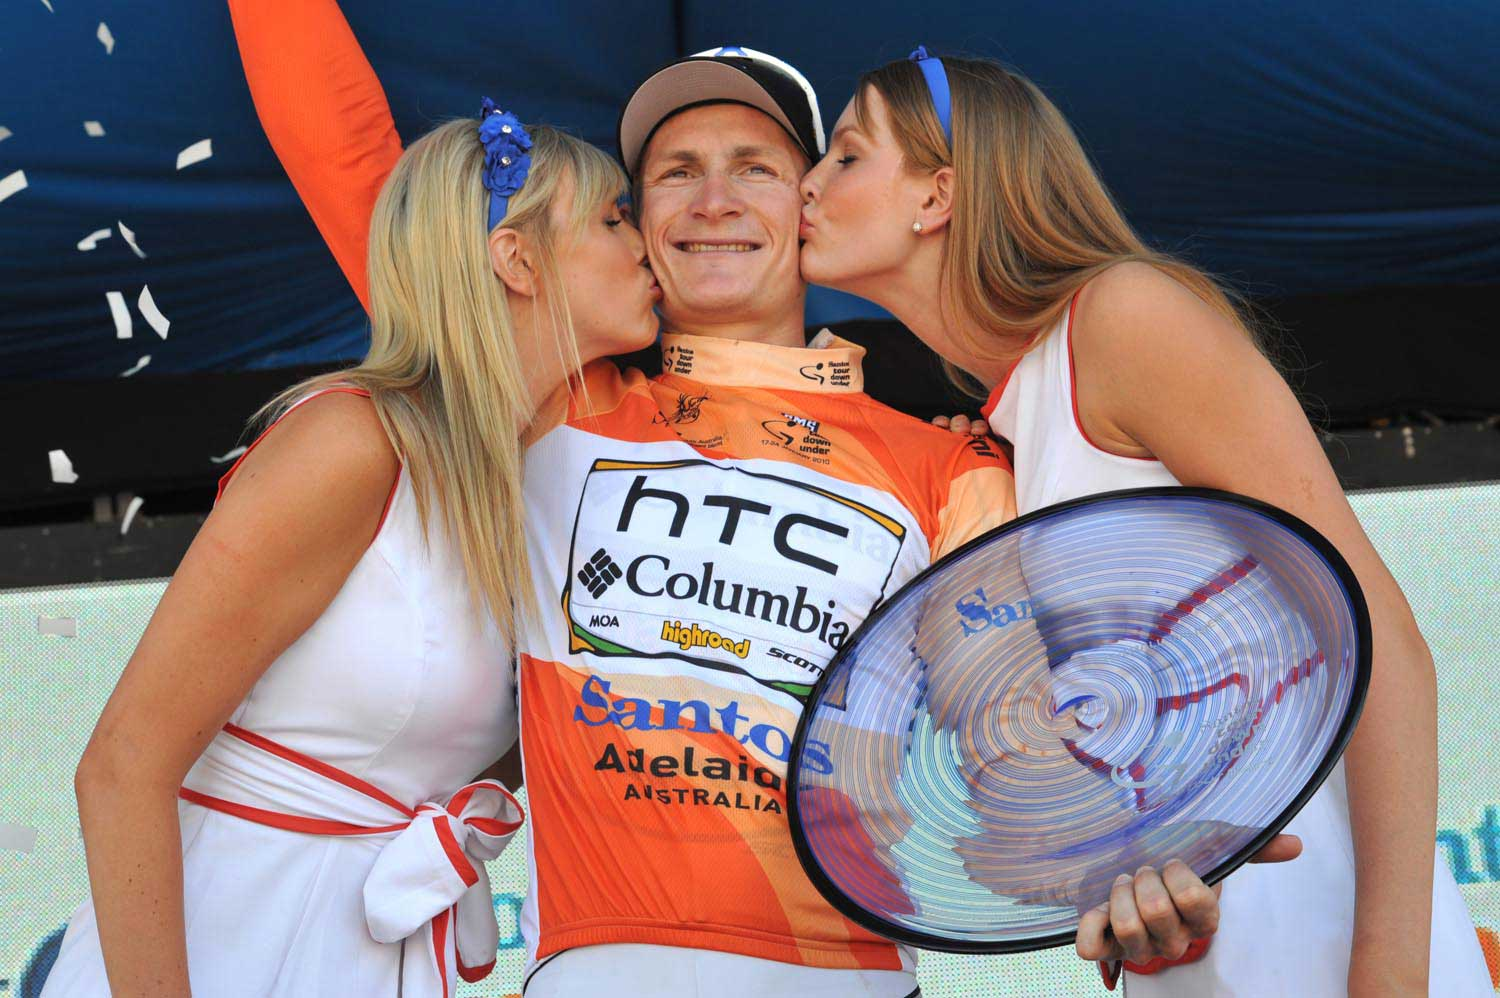 andre greipel, tour down under winner 2010, htc columbia